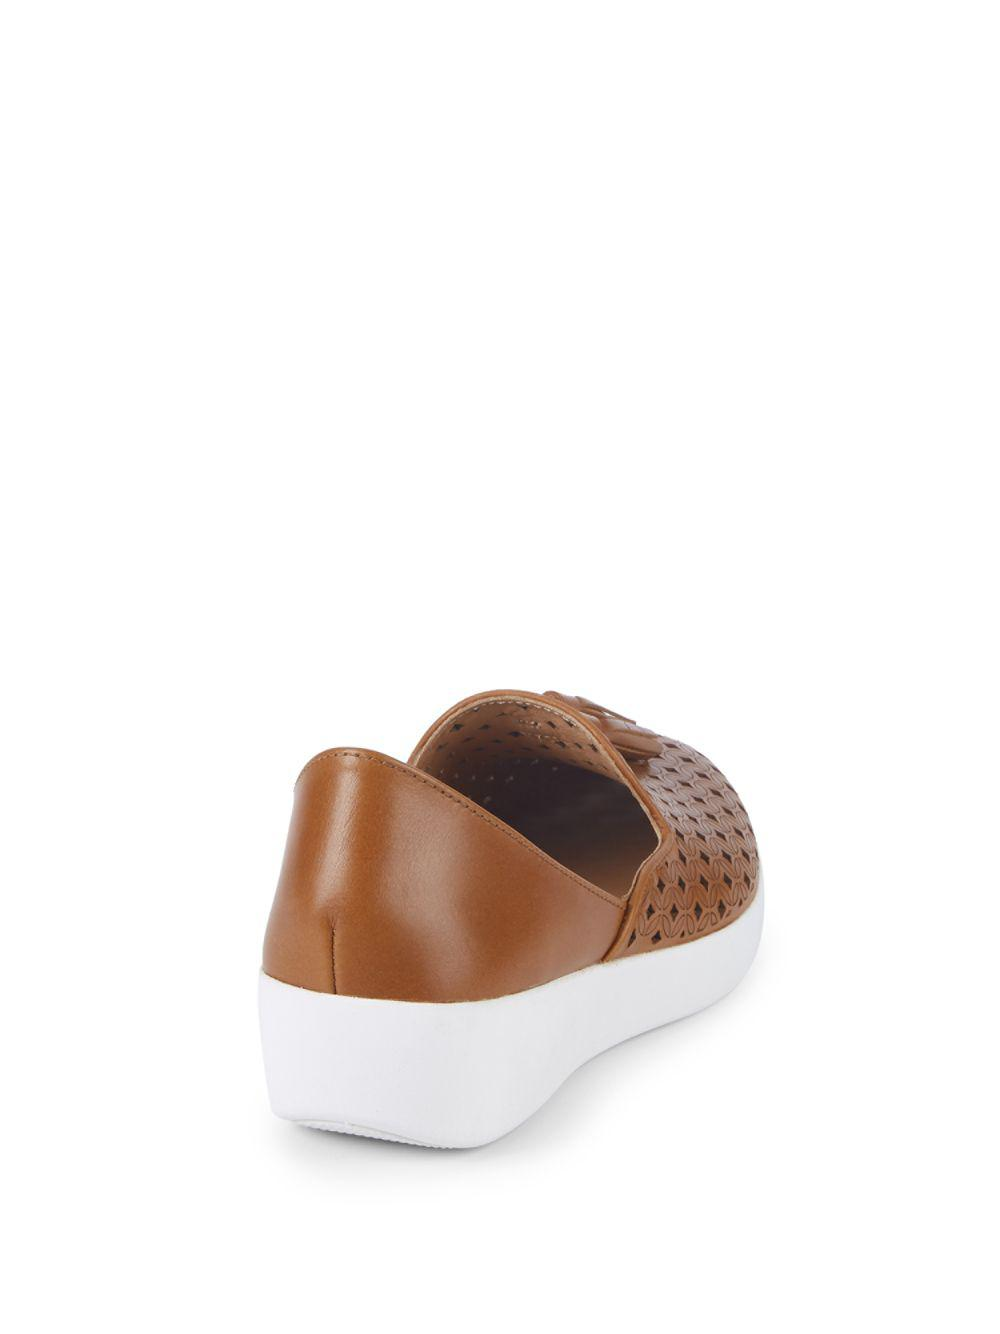 f52b8c35e271 Fitflop Superskate D orsay Leather Loafers in Brown - Lyst